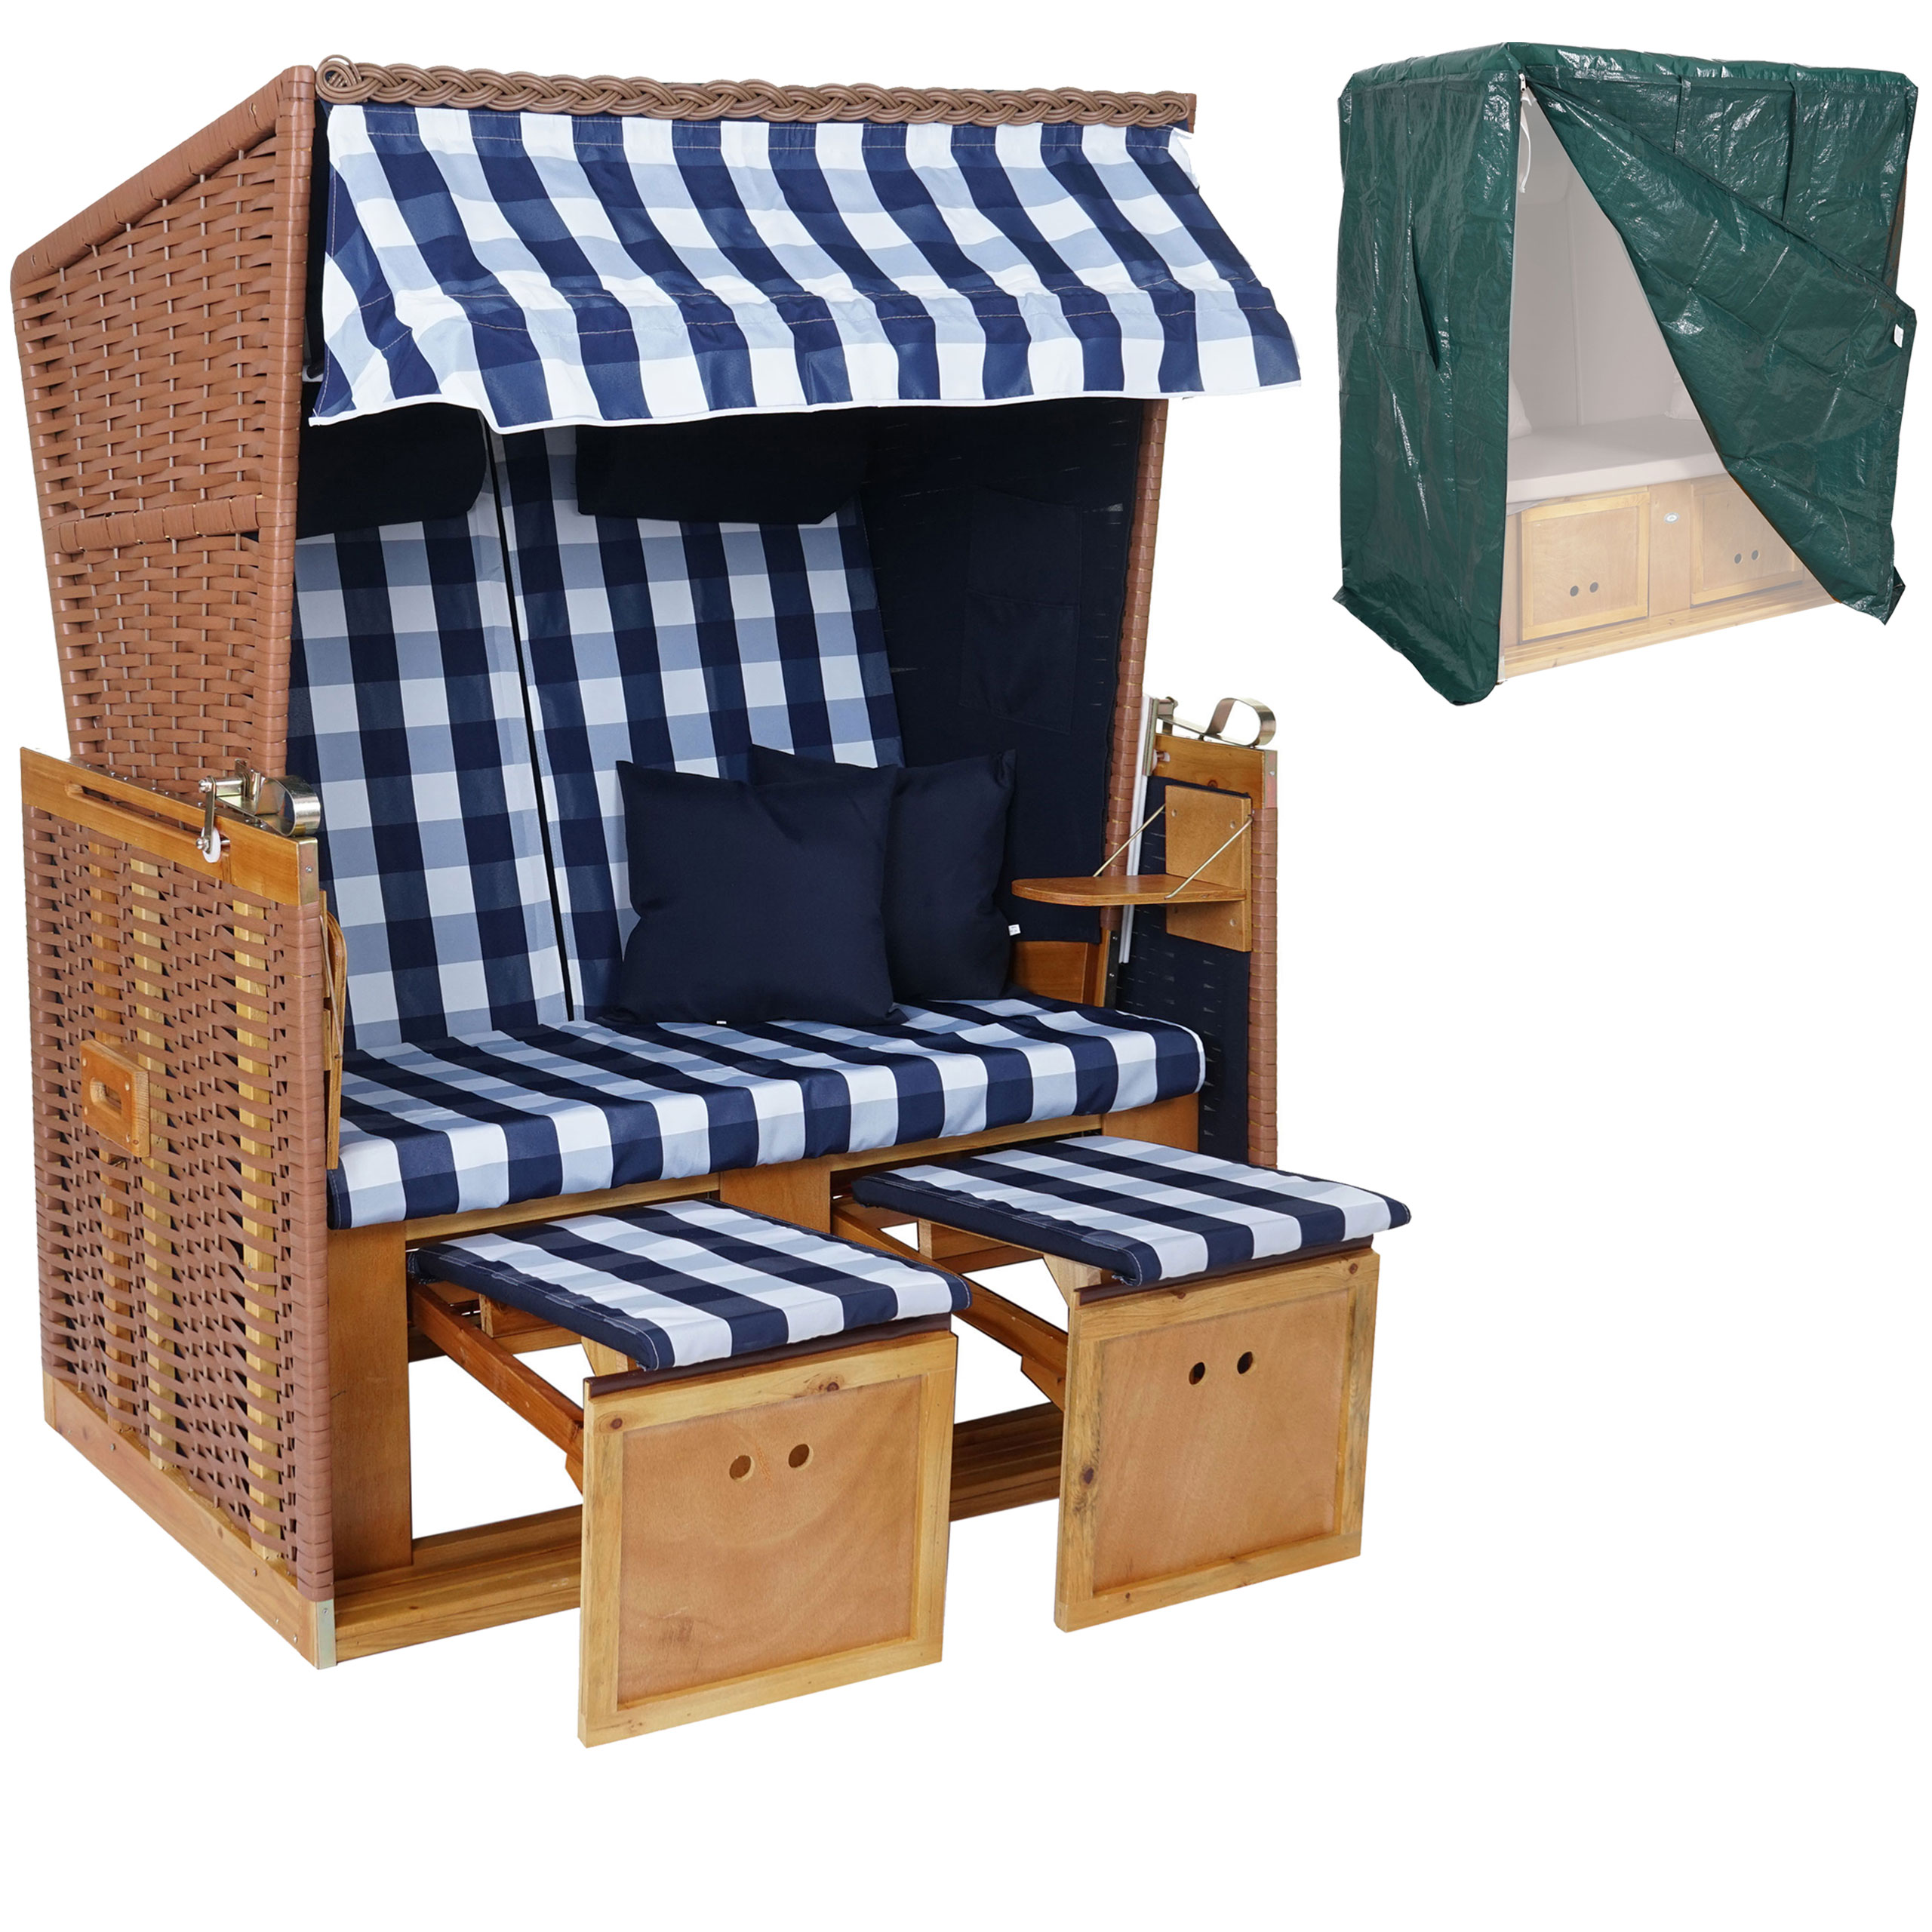 poly rattan strandkorb hwc a11 volllieger ostsee nordsee inkl abdeckung blau wei. Black Bedroom Furniture Sets. Home Design Ideas